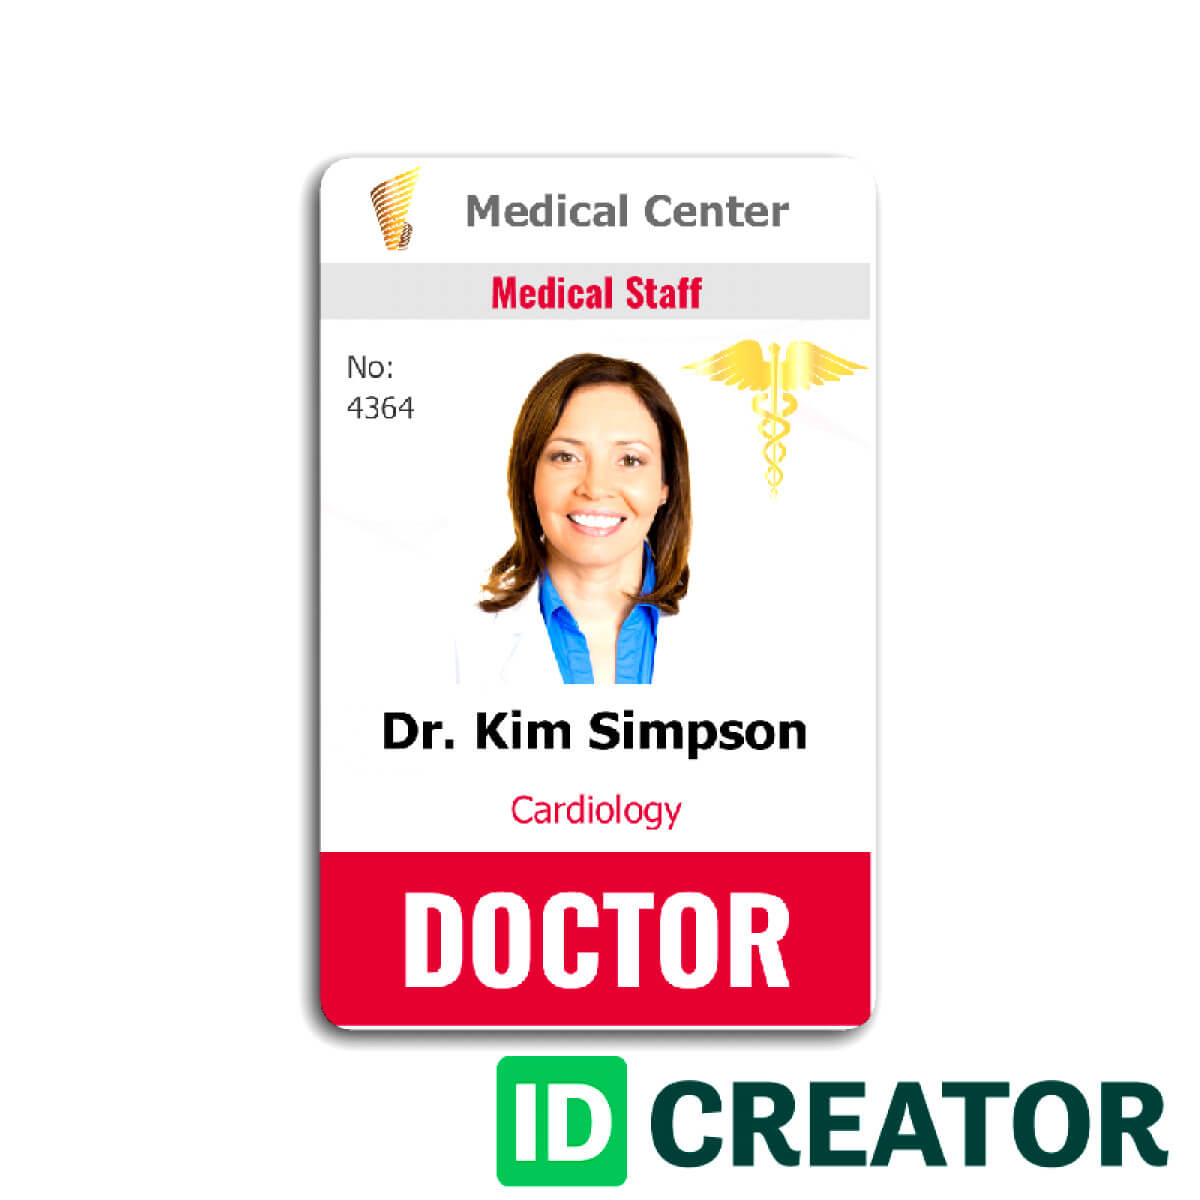 Id Card Template Coreldraw – Bushveld Lab intended for Doctor Id Card Template